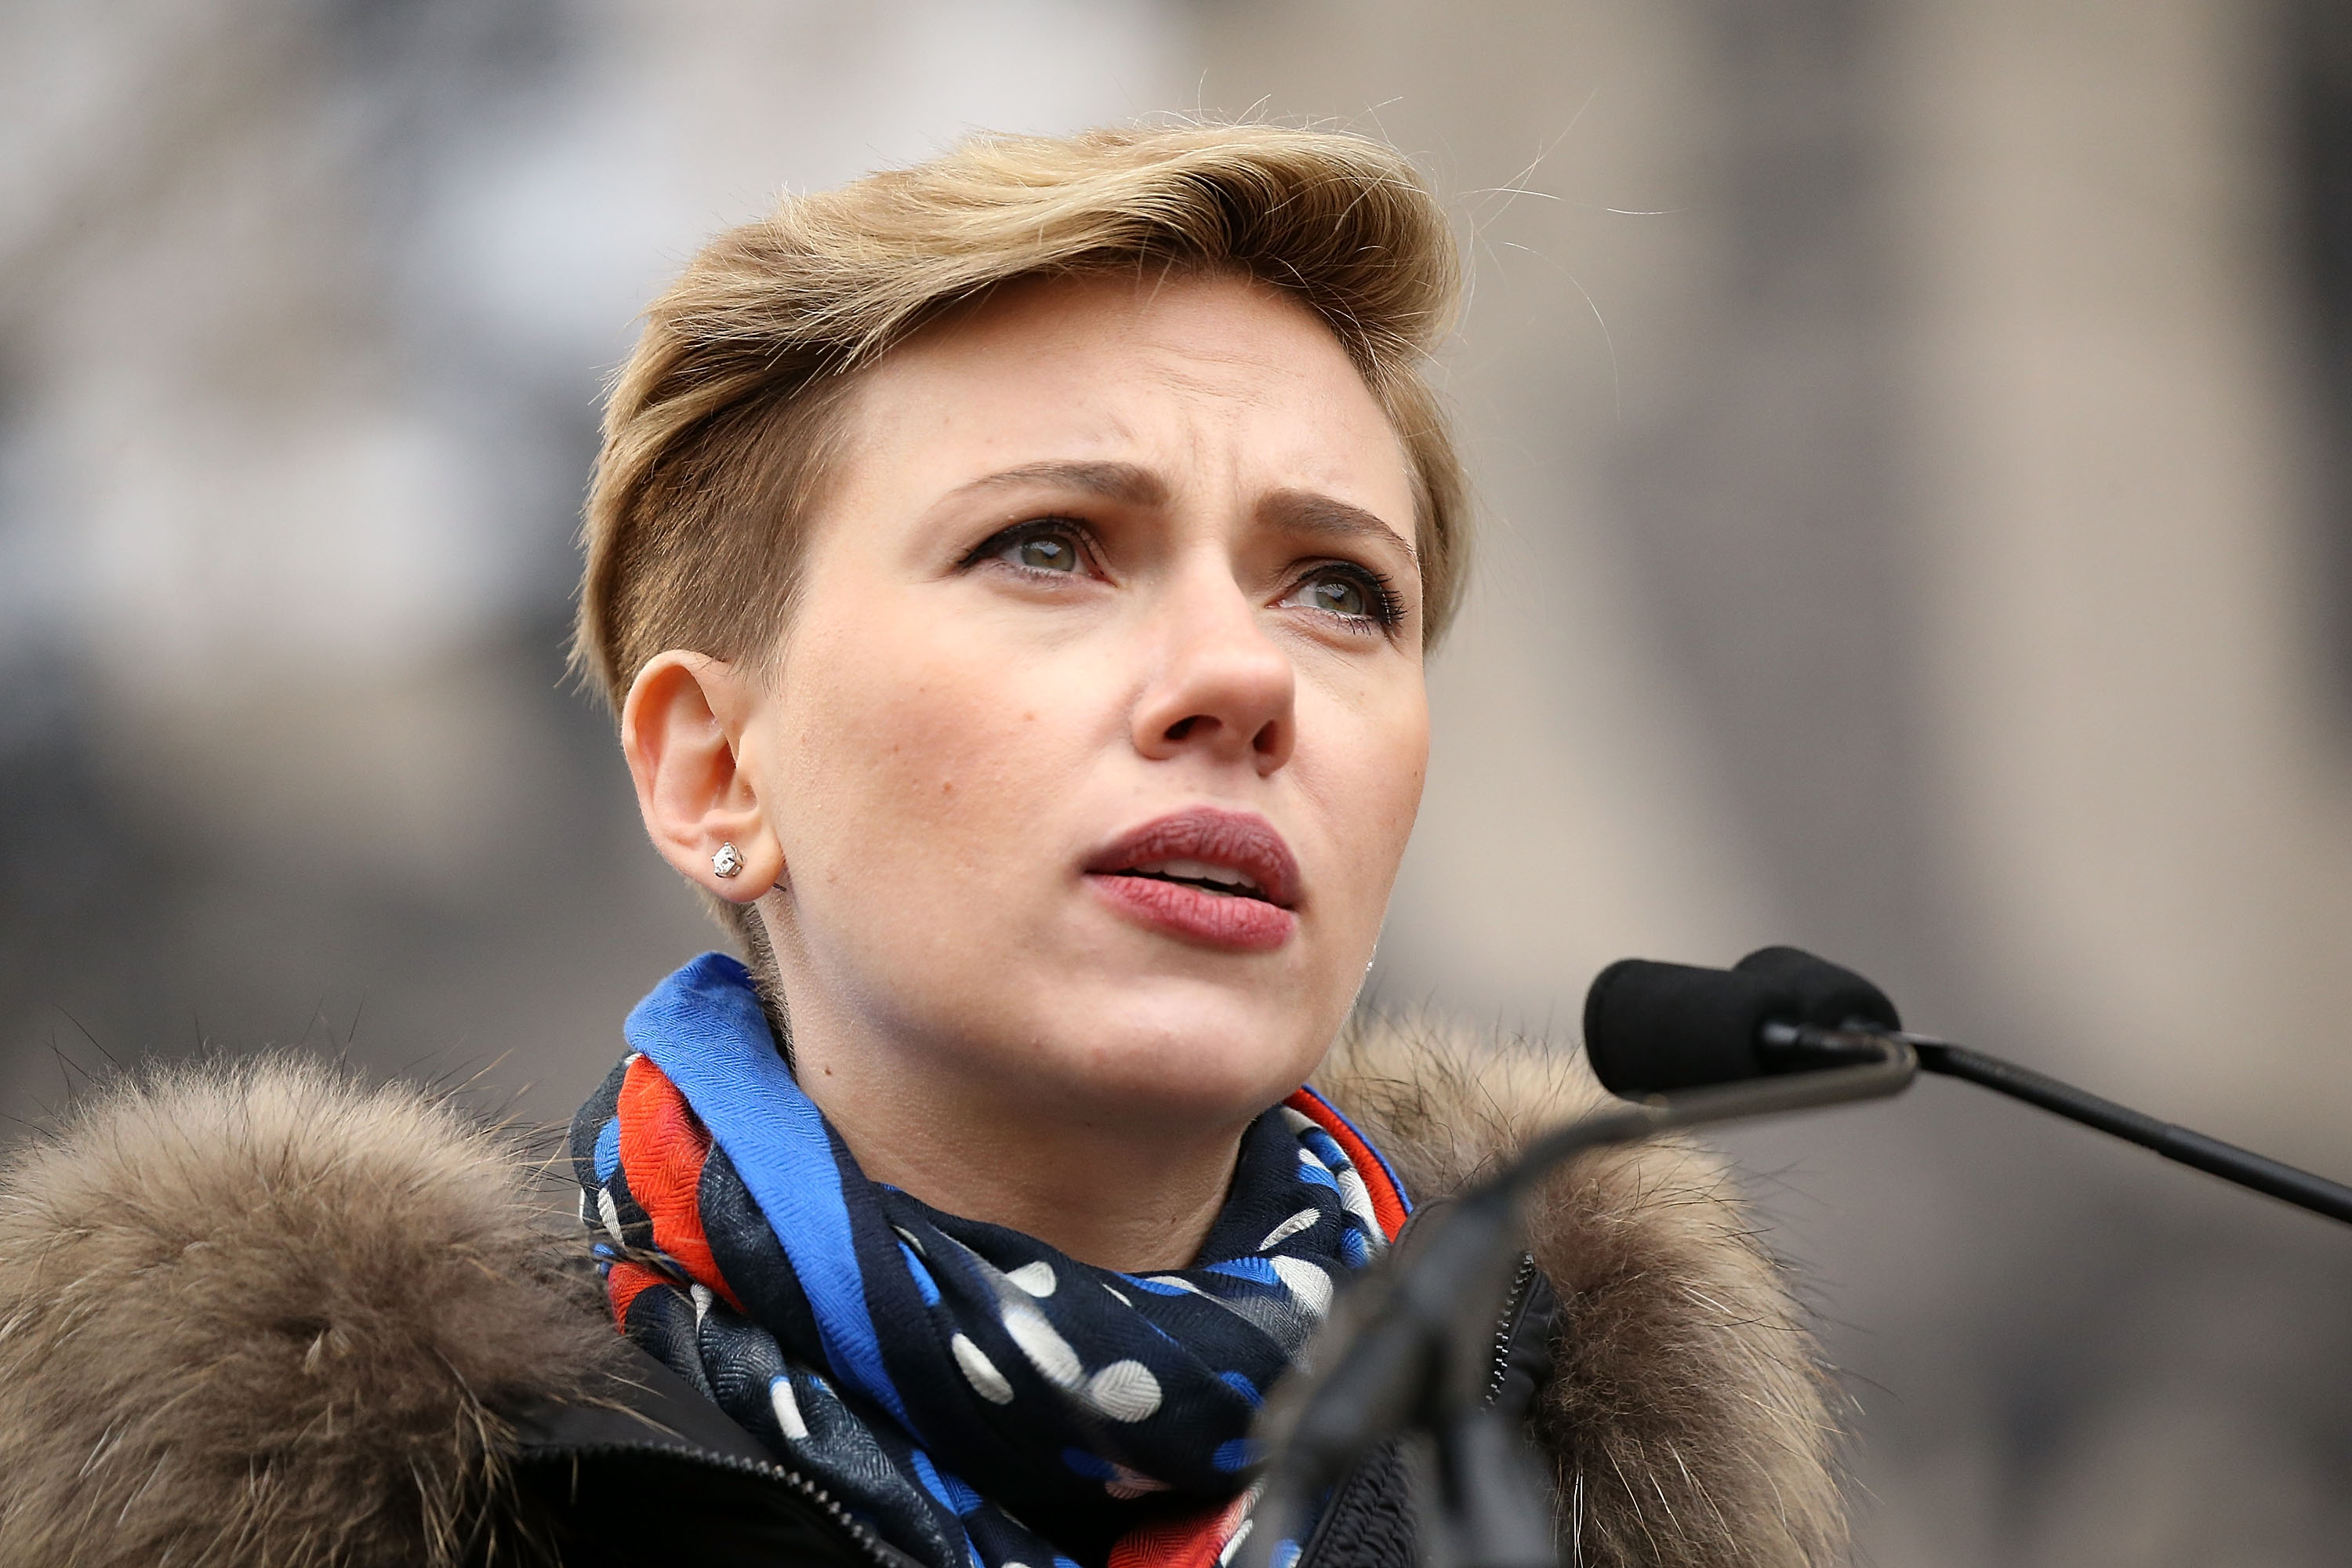 Scarlett Johansson speaks onstage during the rally at the Women's March on Washington on January 21, 2017 in Washington, DC.